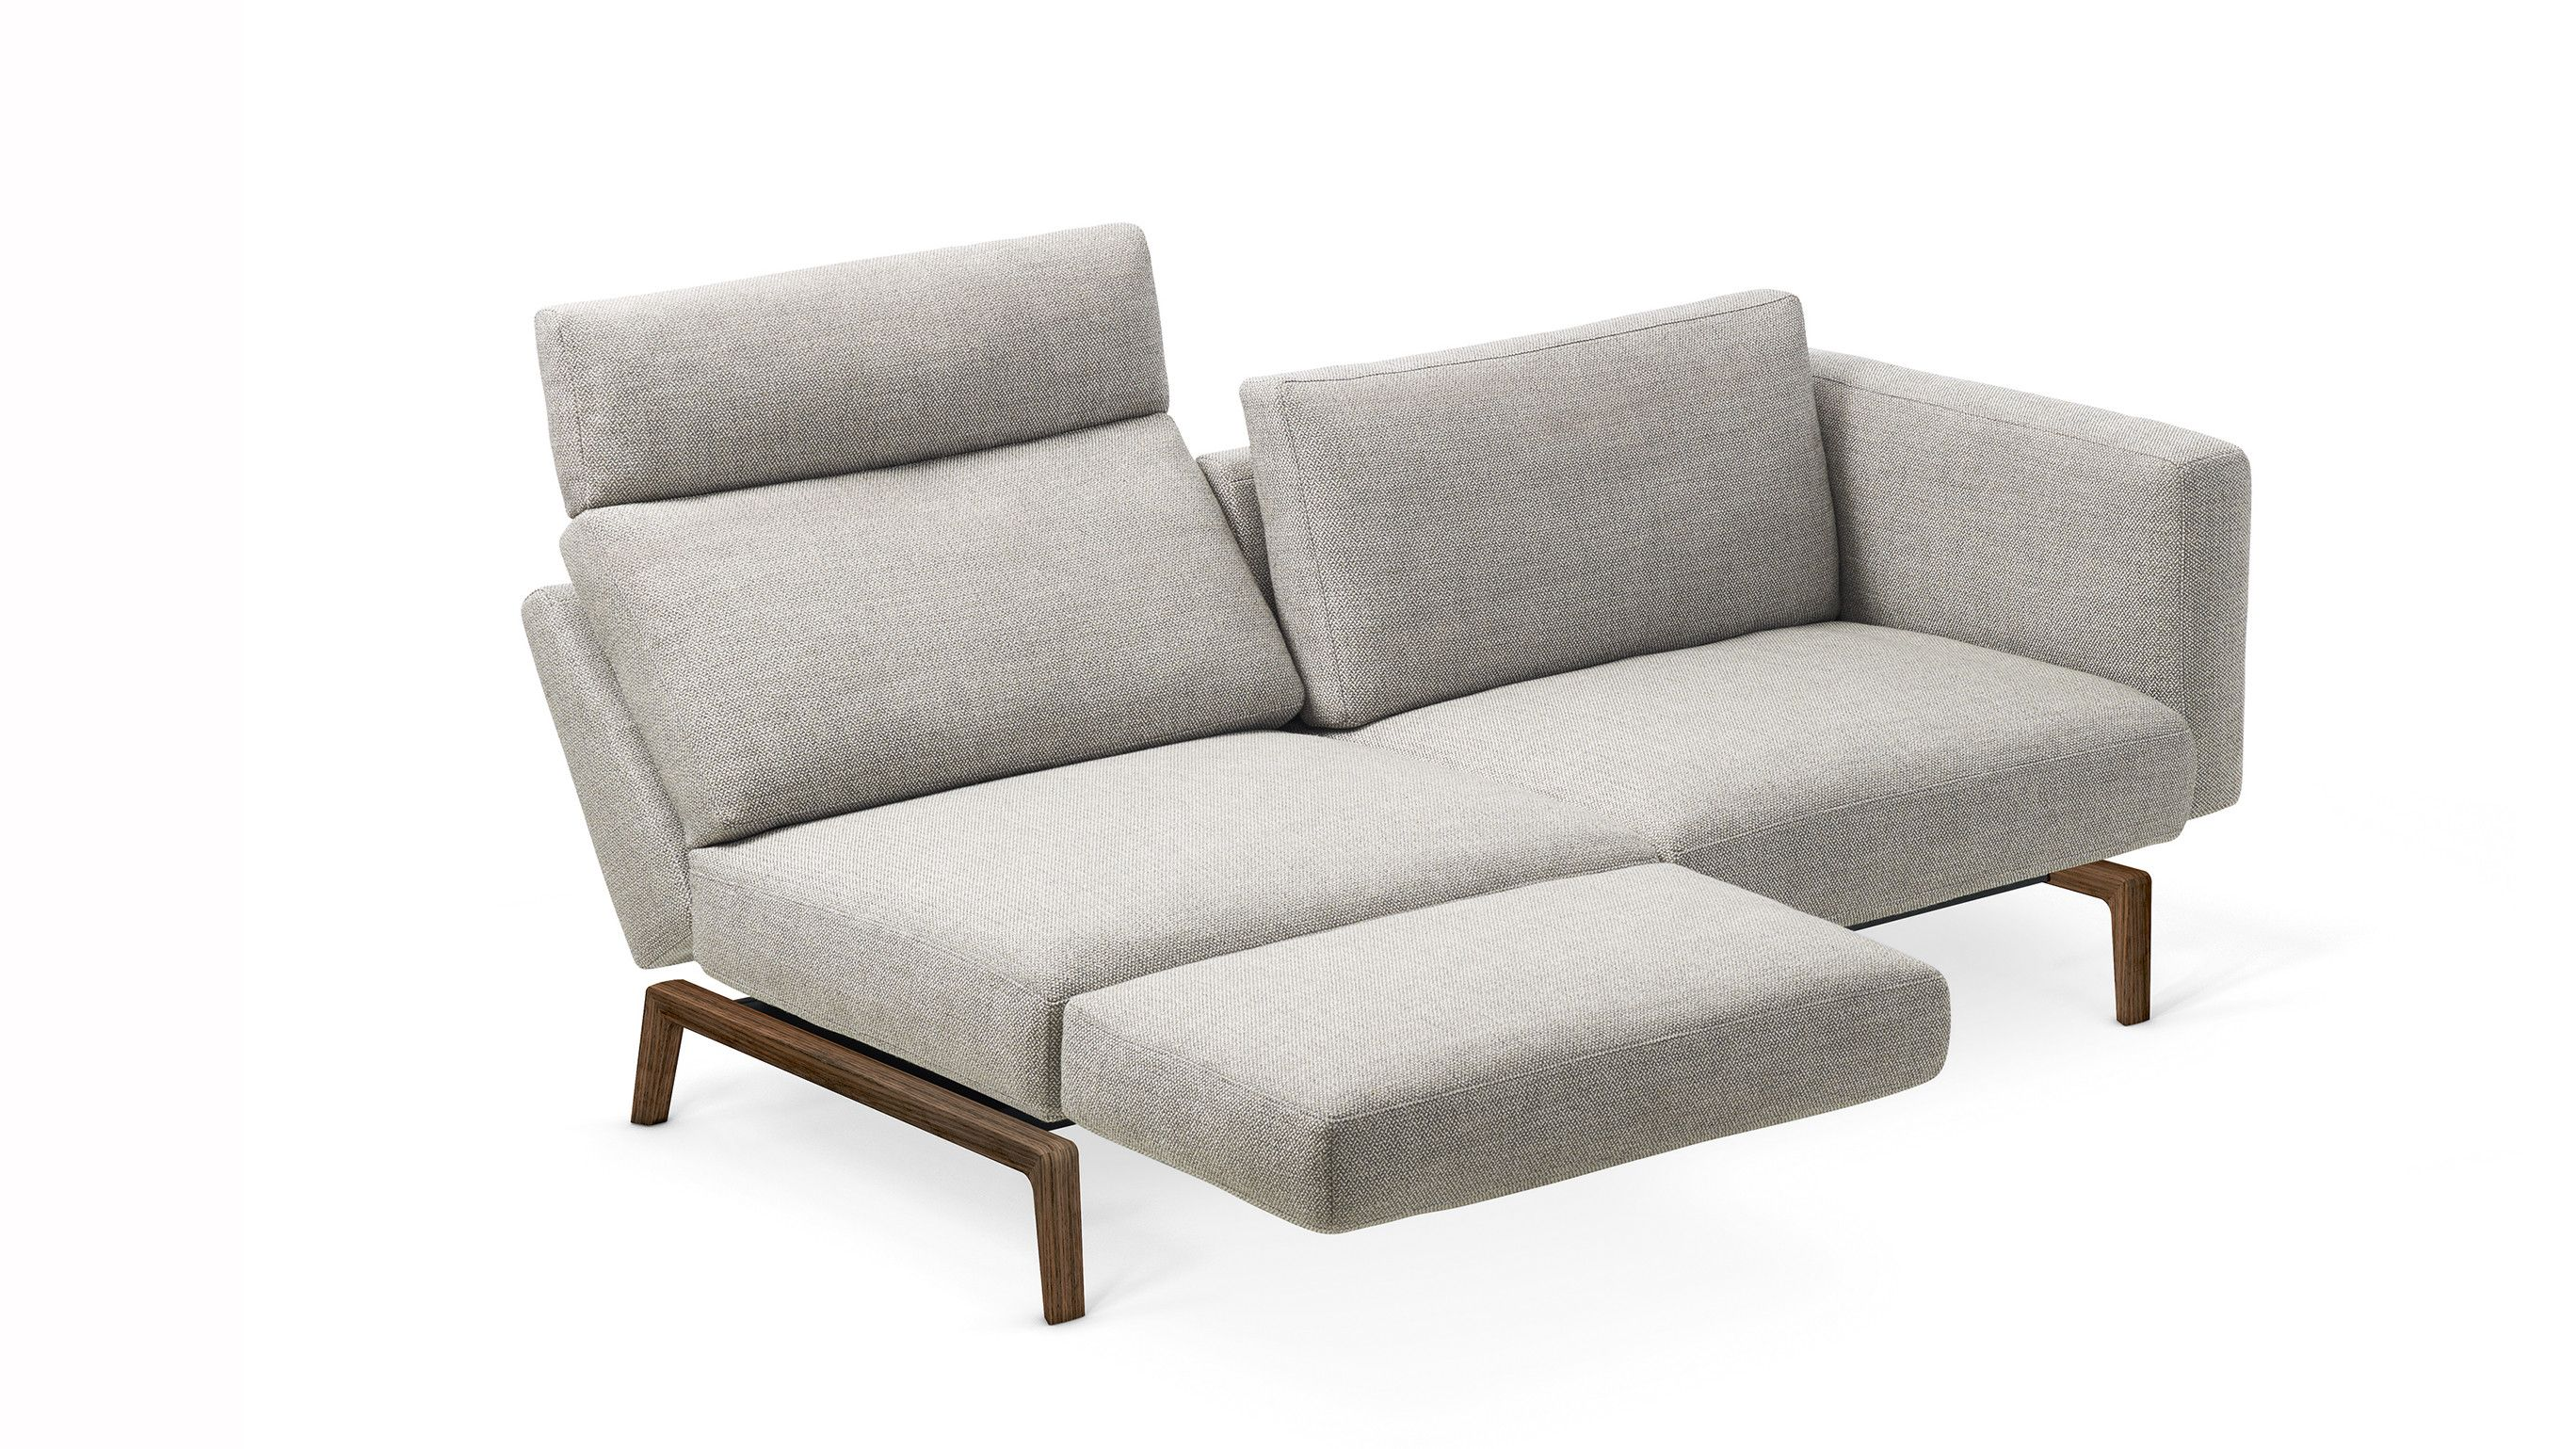 Bettsofa Jimmy Smart Intertime Furniture Sofa Furniture Design Design